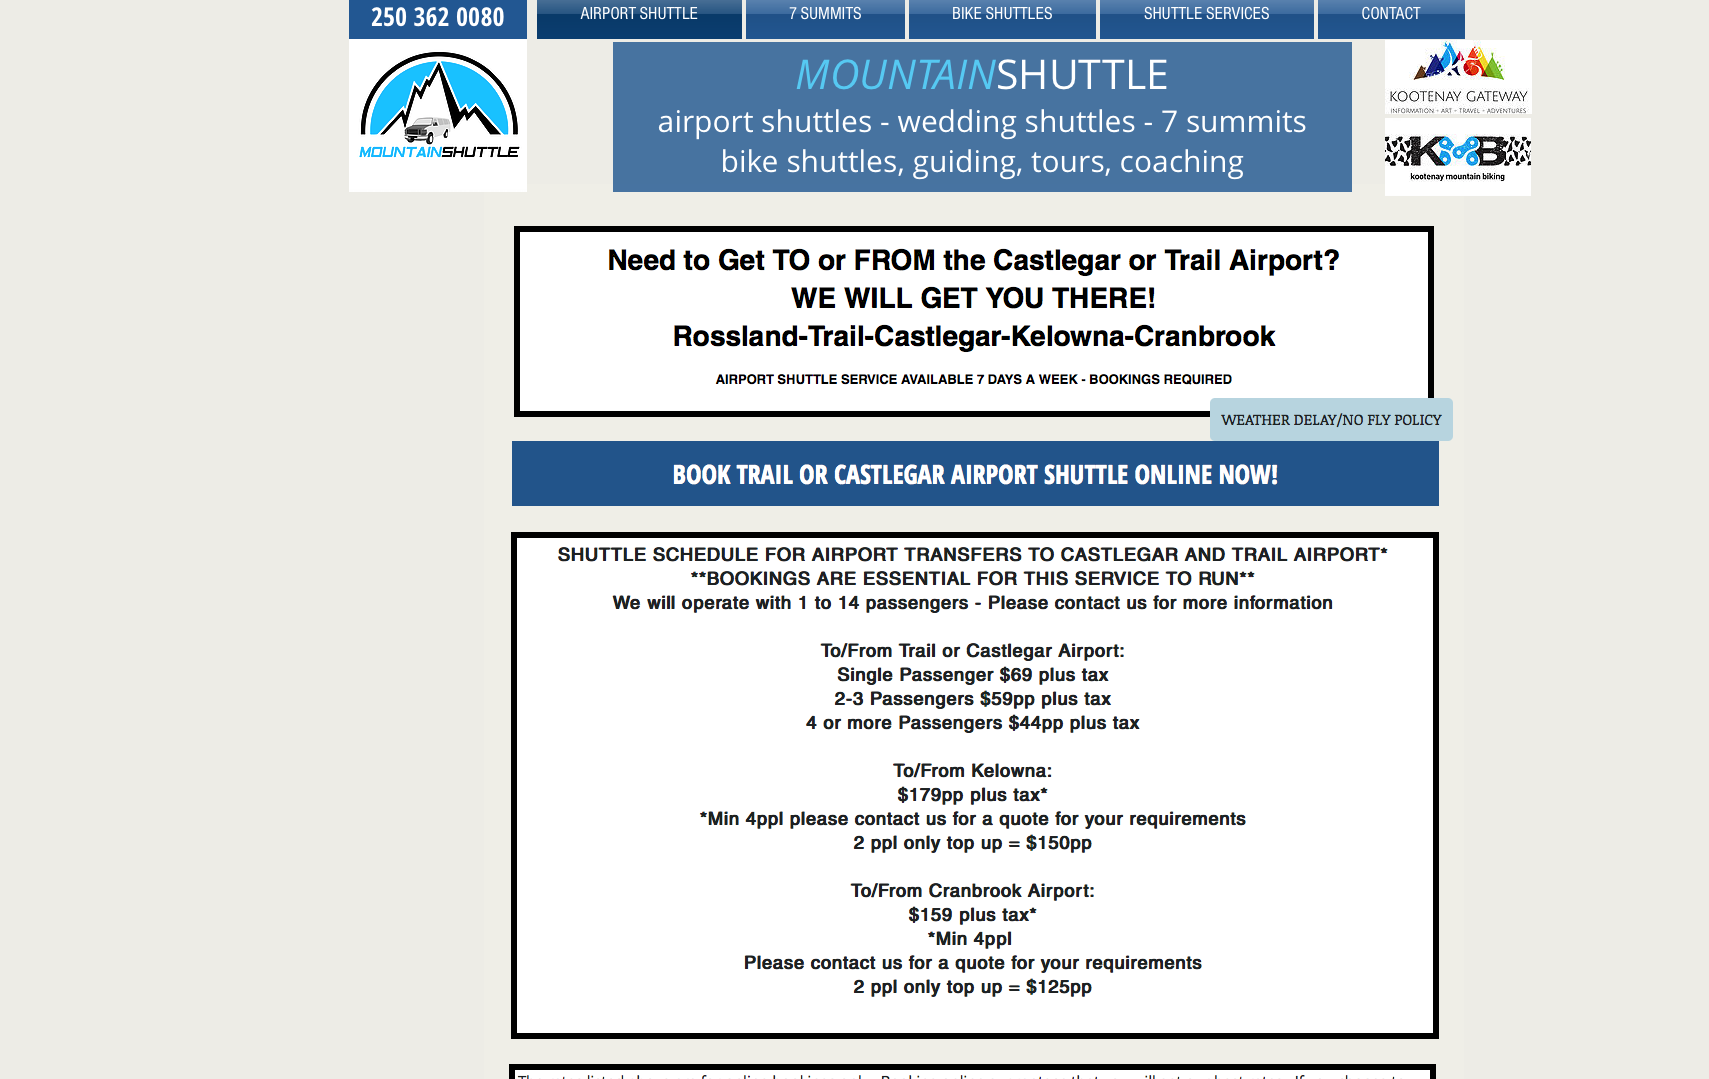 http://www.mountainshuttle.ca/airport-shuttle